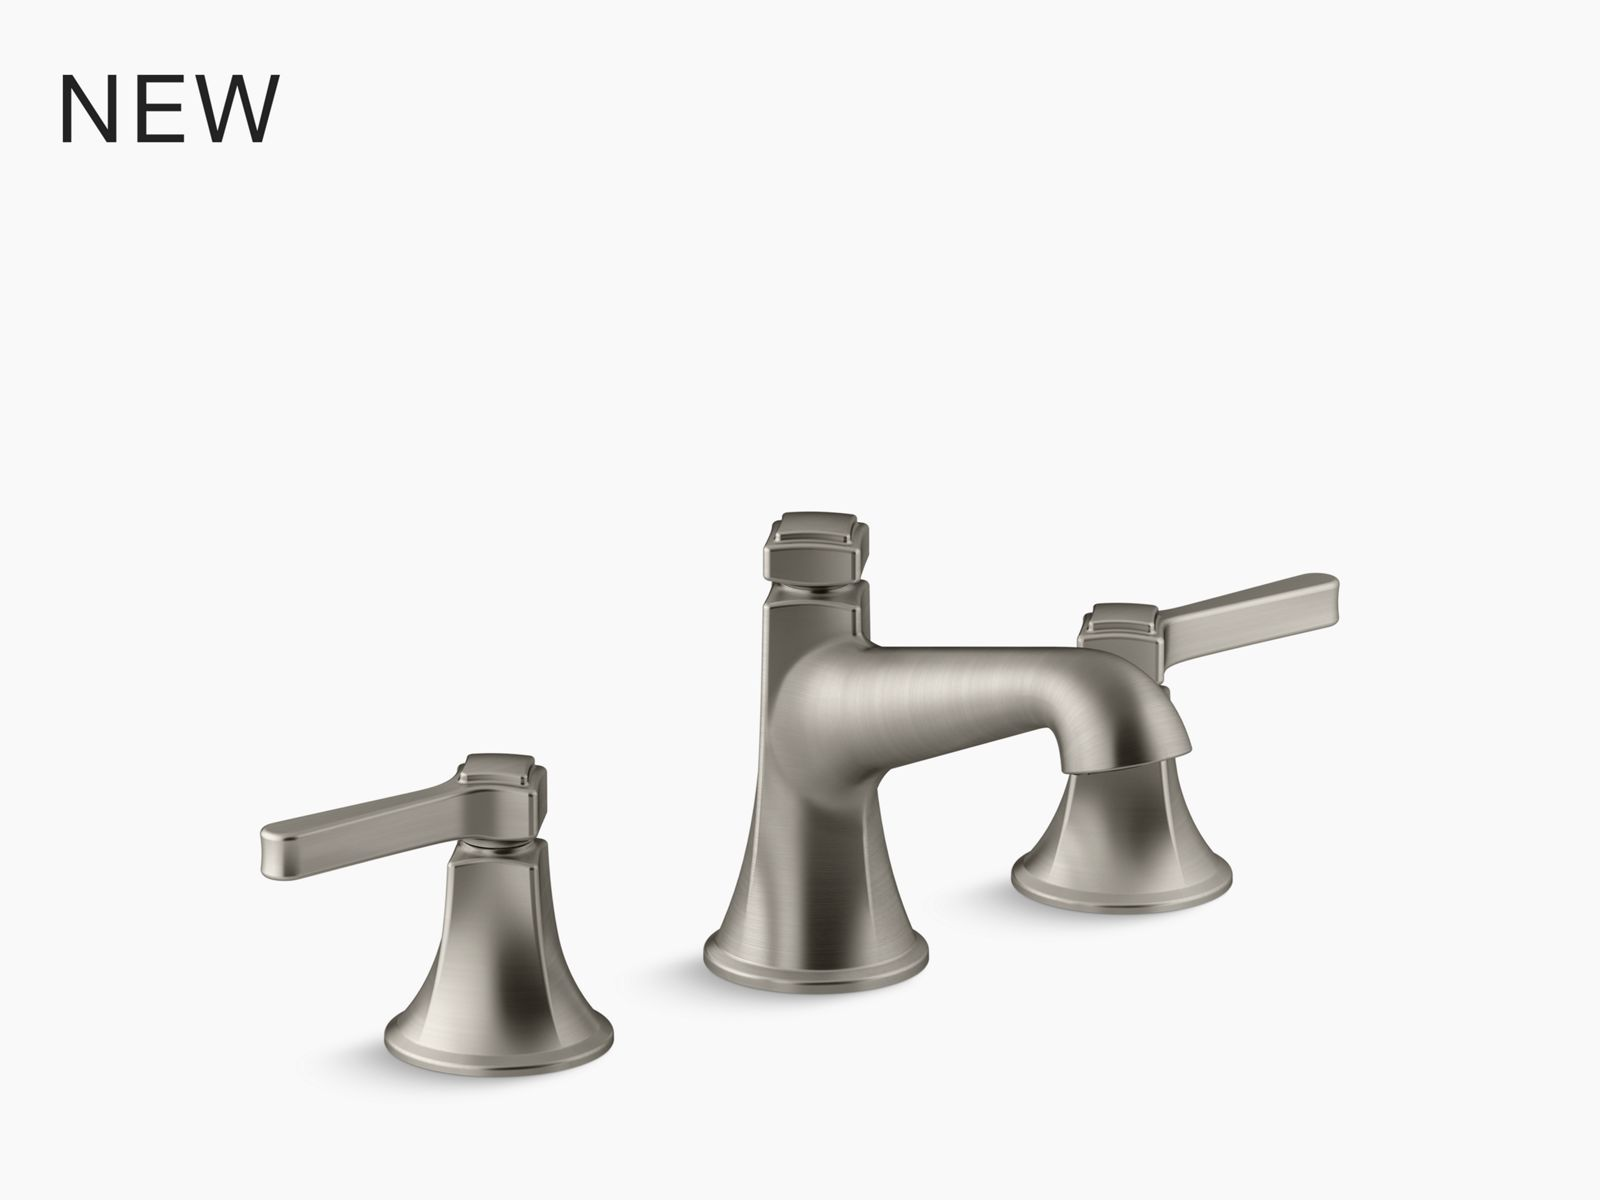 neuhaus pull down kitchen faucet with soap lotion dispenser